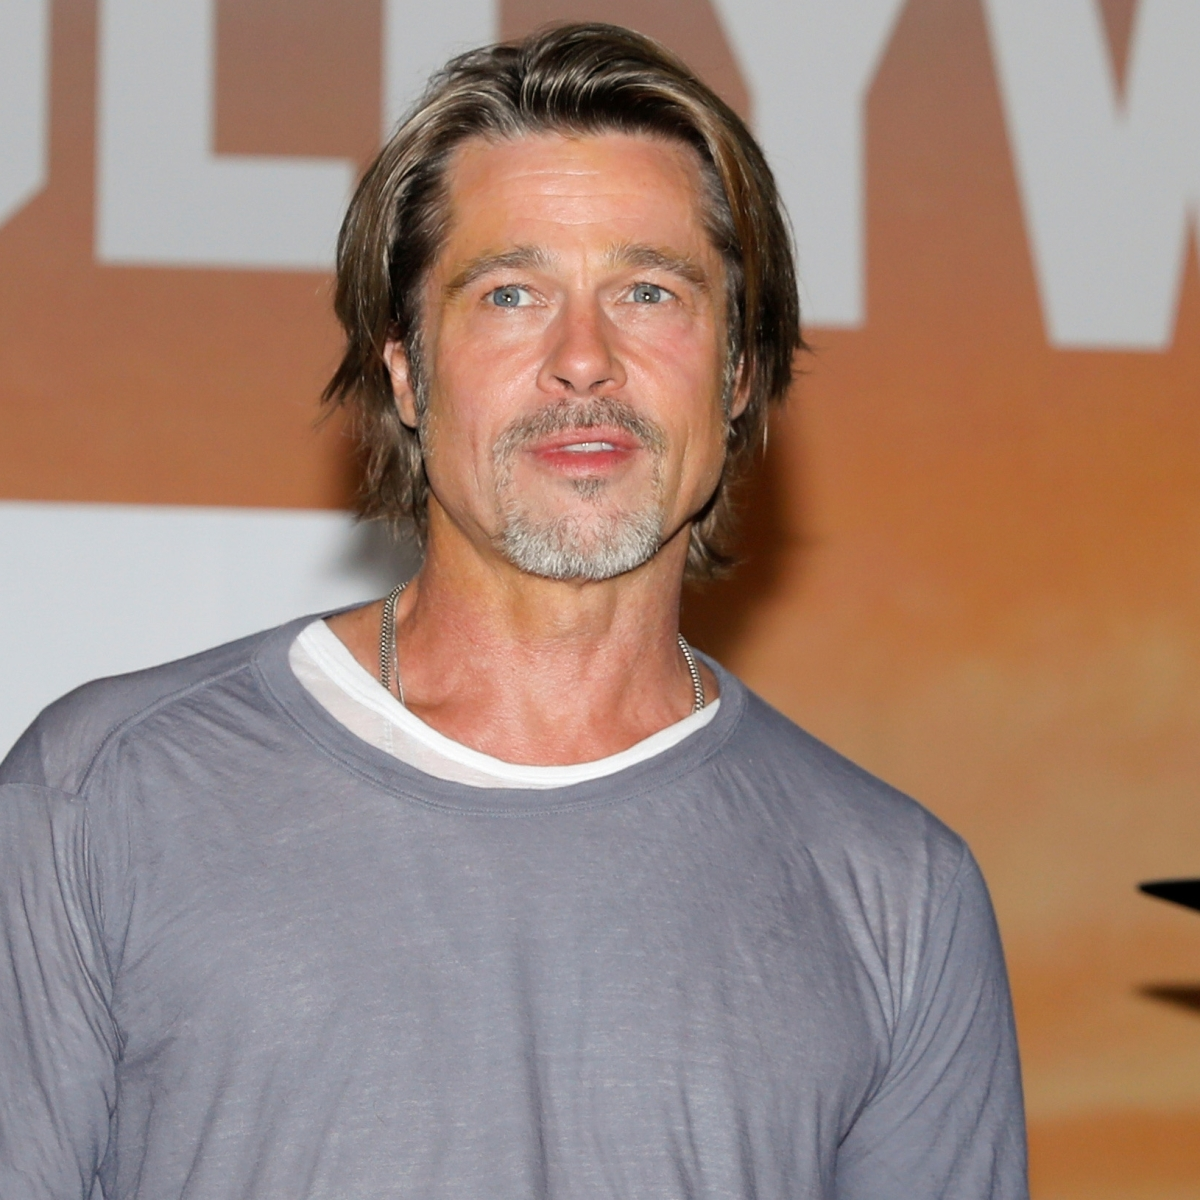 Why did Brad Pitt exit in a wheelchair post-dentist visit?